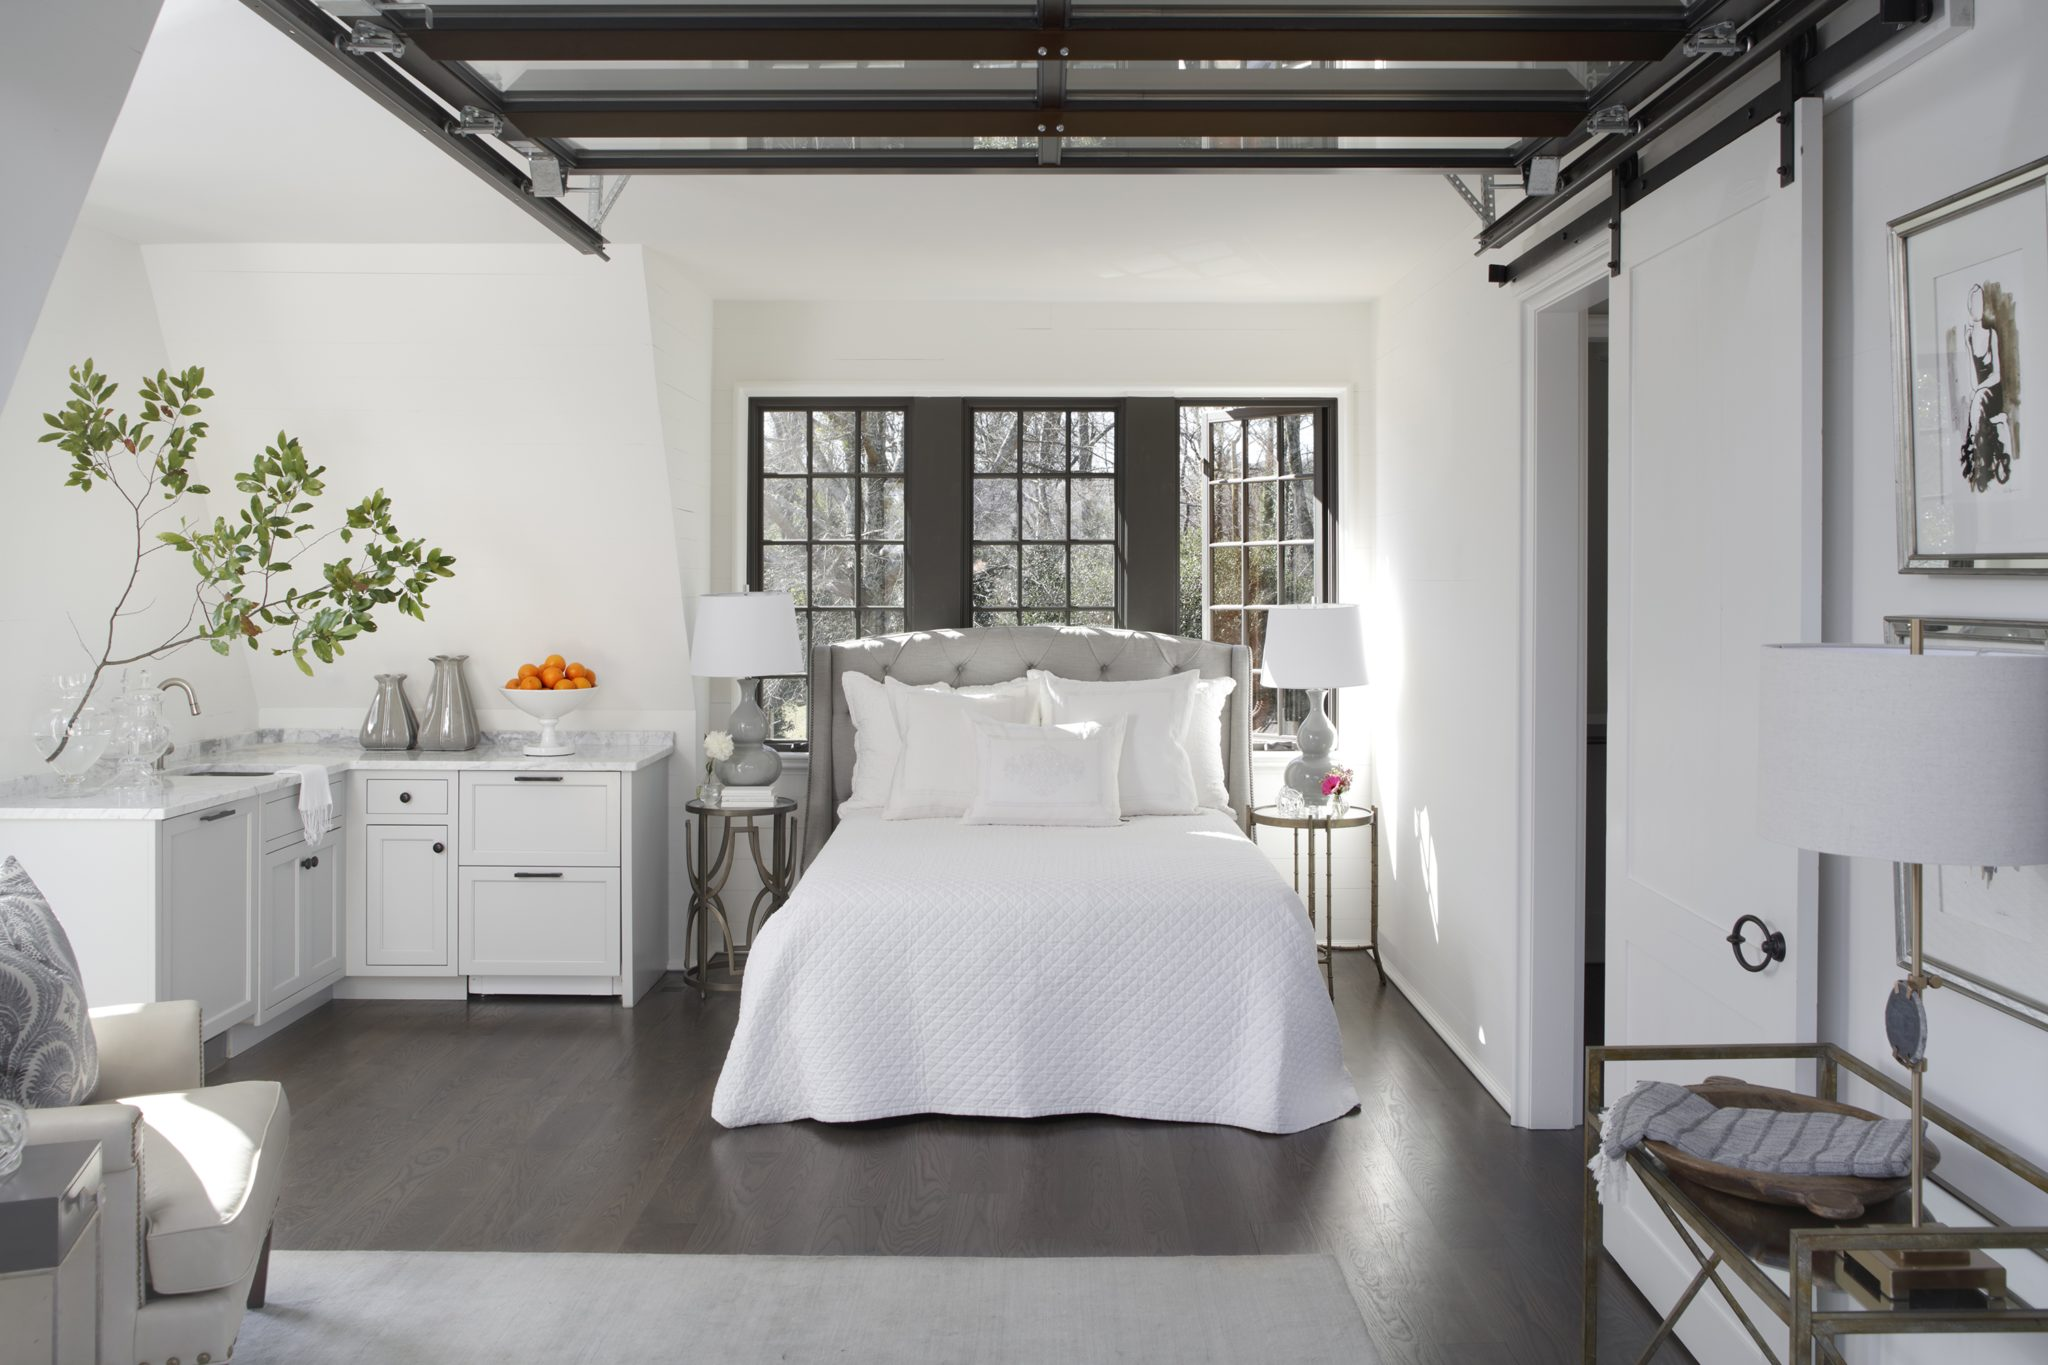 Overhead, the custom-designed steel garage door opens to allow increased space in the guest suite above the existing two-car garage. A tufted headboard from Birmingham Wholesale Furniture adds sophistication to the space; the table lamps and night stands are also from Birmingham Wholesale Furniture.